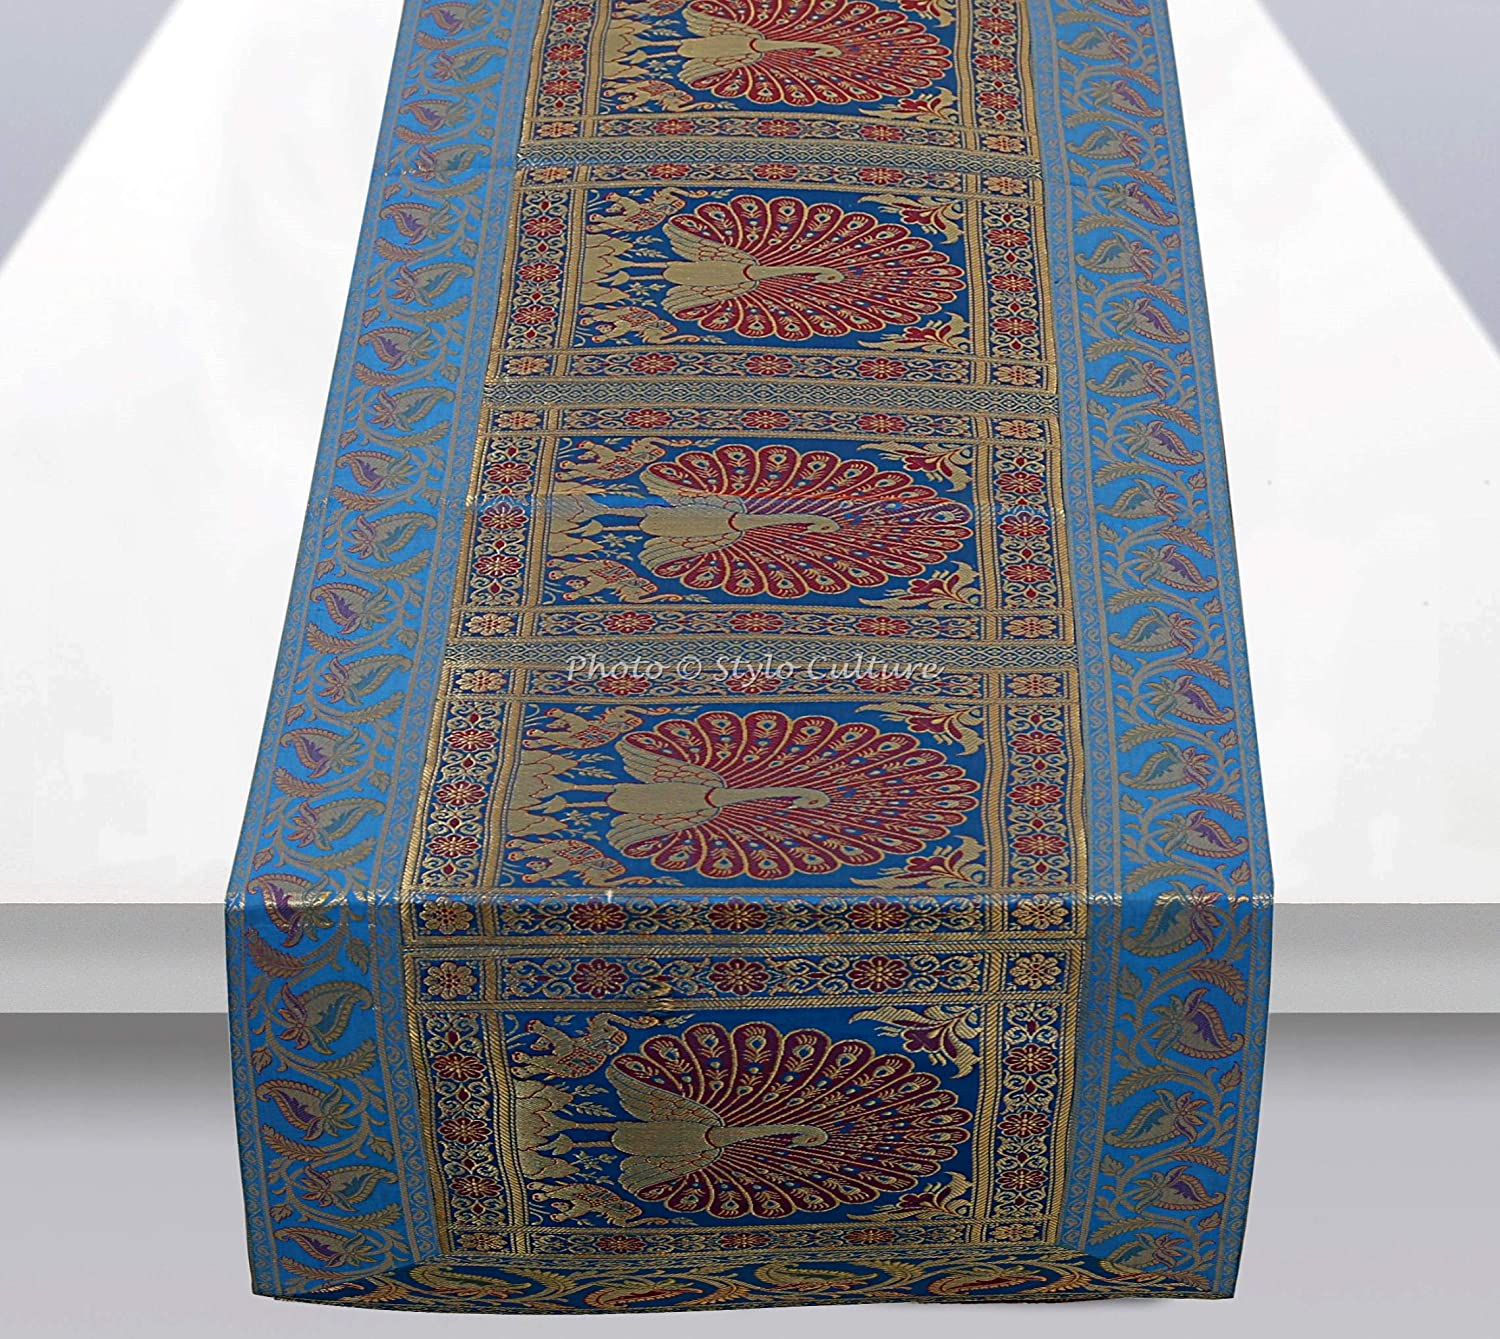 Stylo Culture Brocade Jacquard Center Table Runner Turquoise Rectangular Bohemian Ethnic Table Home Decor Peacock Floral Traditional Dining Table Cloth | 60x16 Inches (152 x 40 cm)